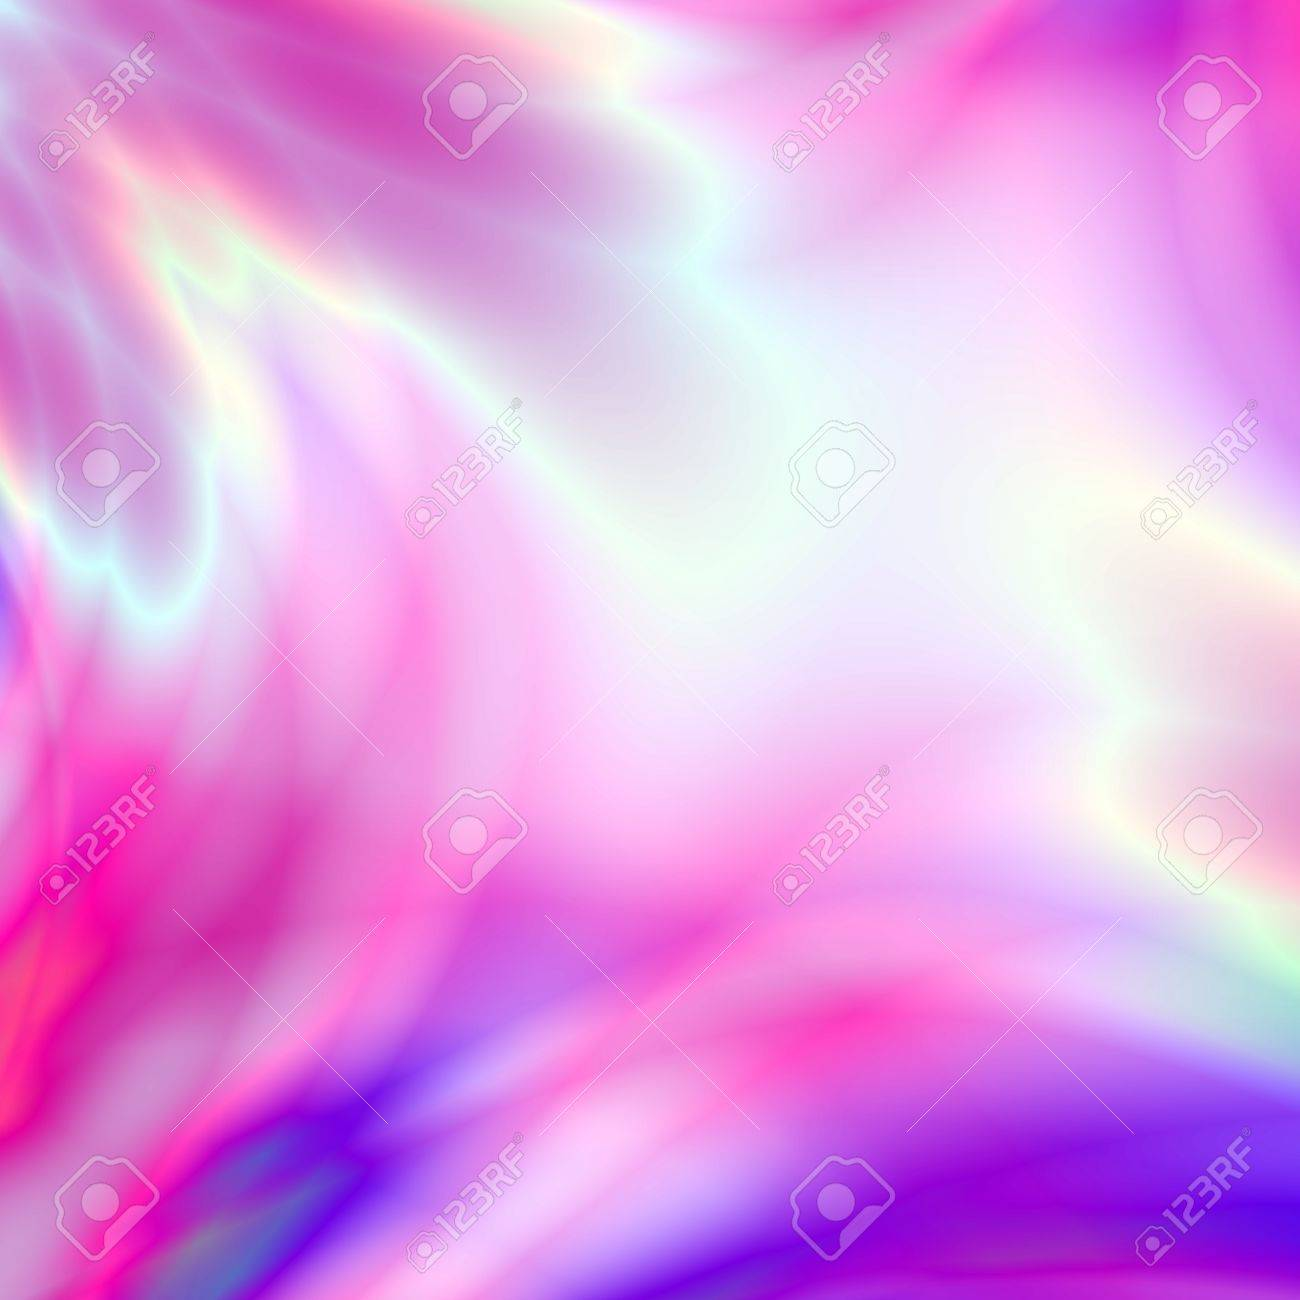 Colorful summer fun abstract wallpaper website background Stock Photo - 21655512